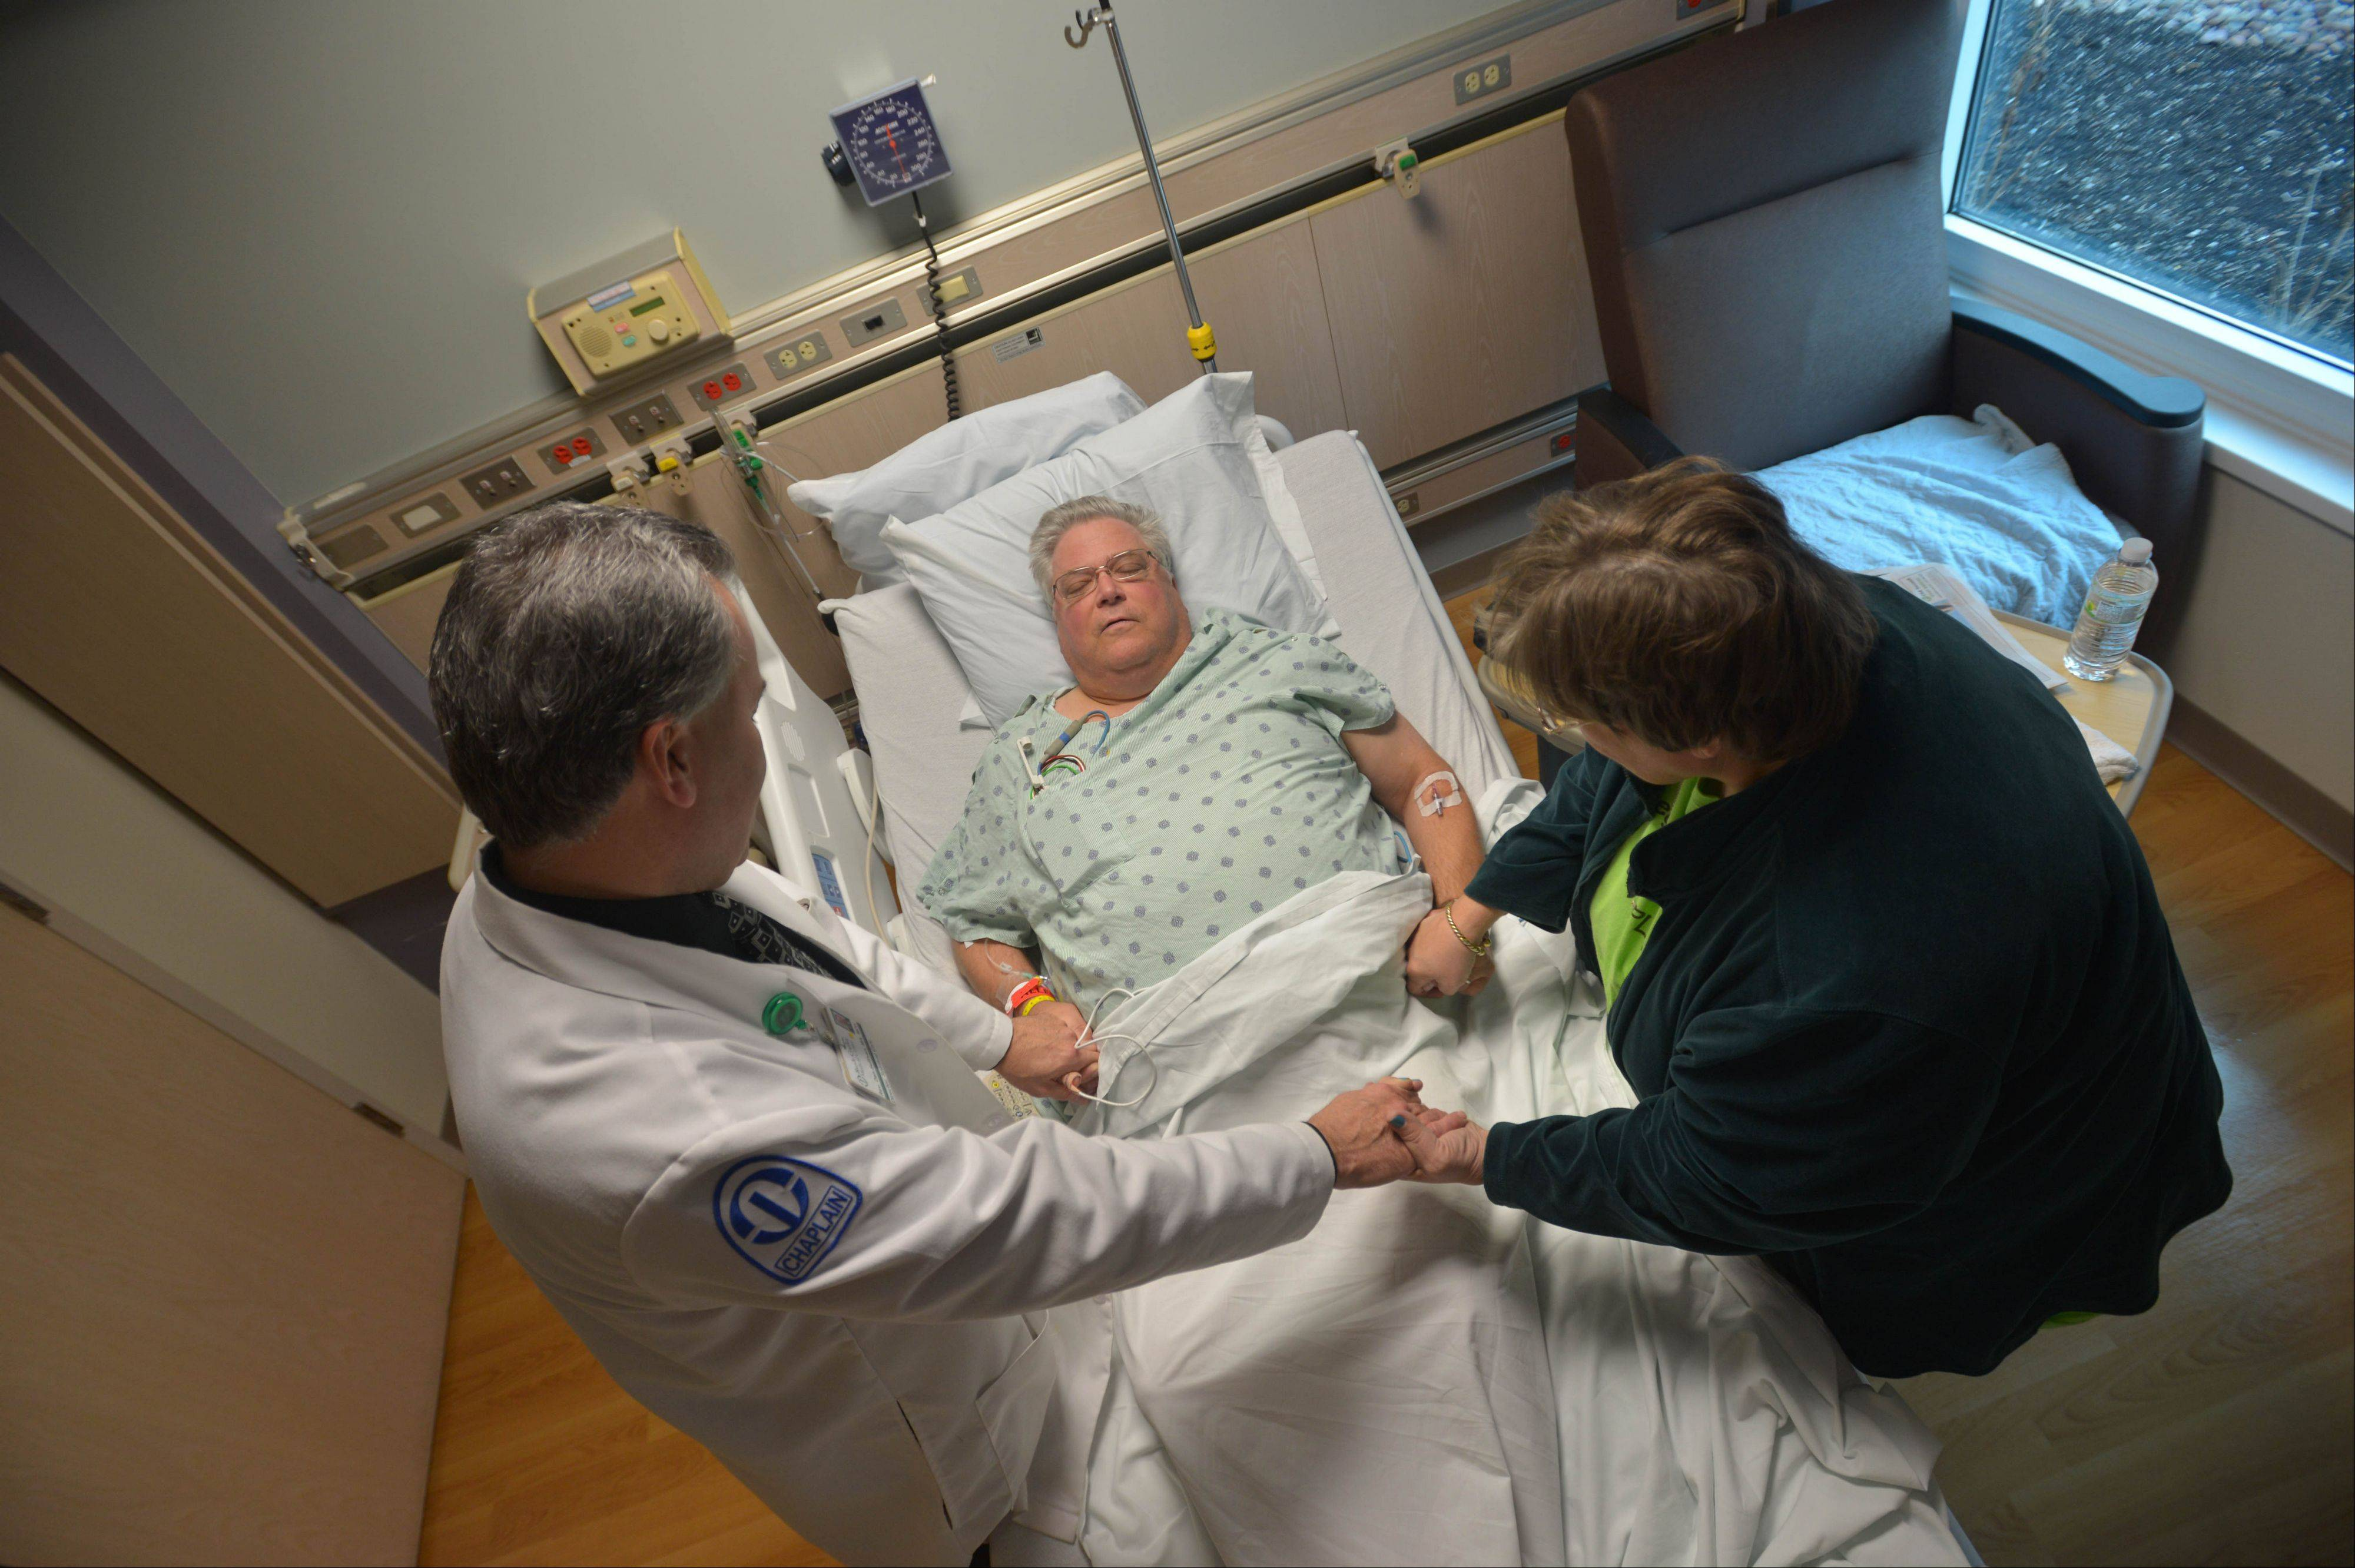 Dan Sullivan takes a moment to pray with Charles Sondgeroth and his wife Joanna of Sandwich during a recent hospitalization at Rush-Copley Medical Center in Aurora.